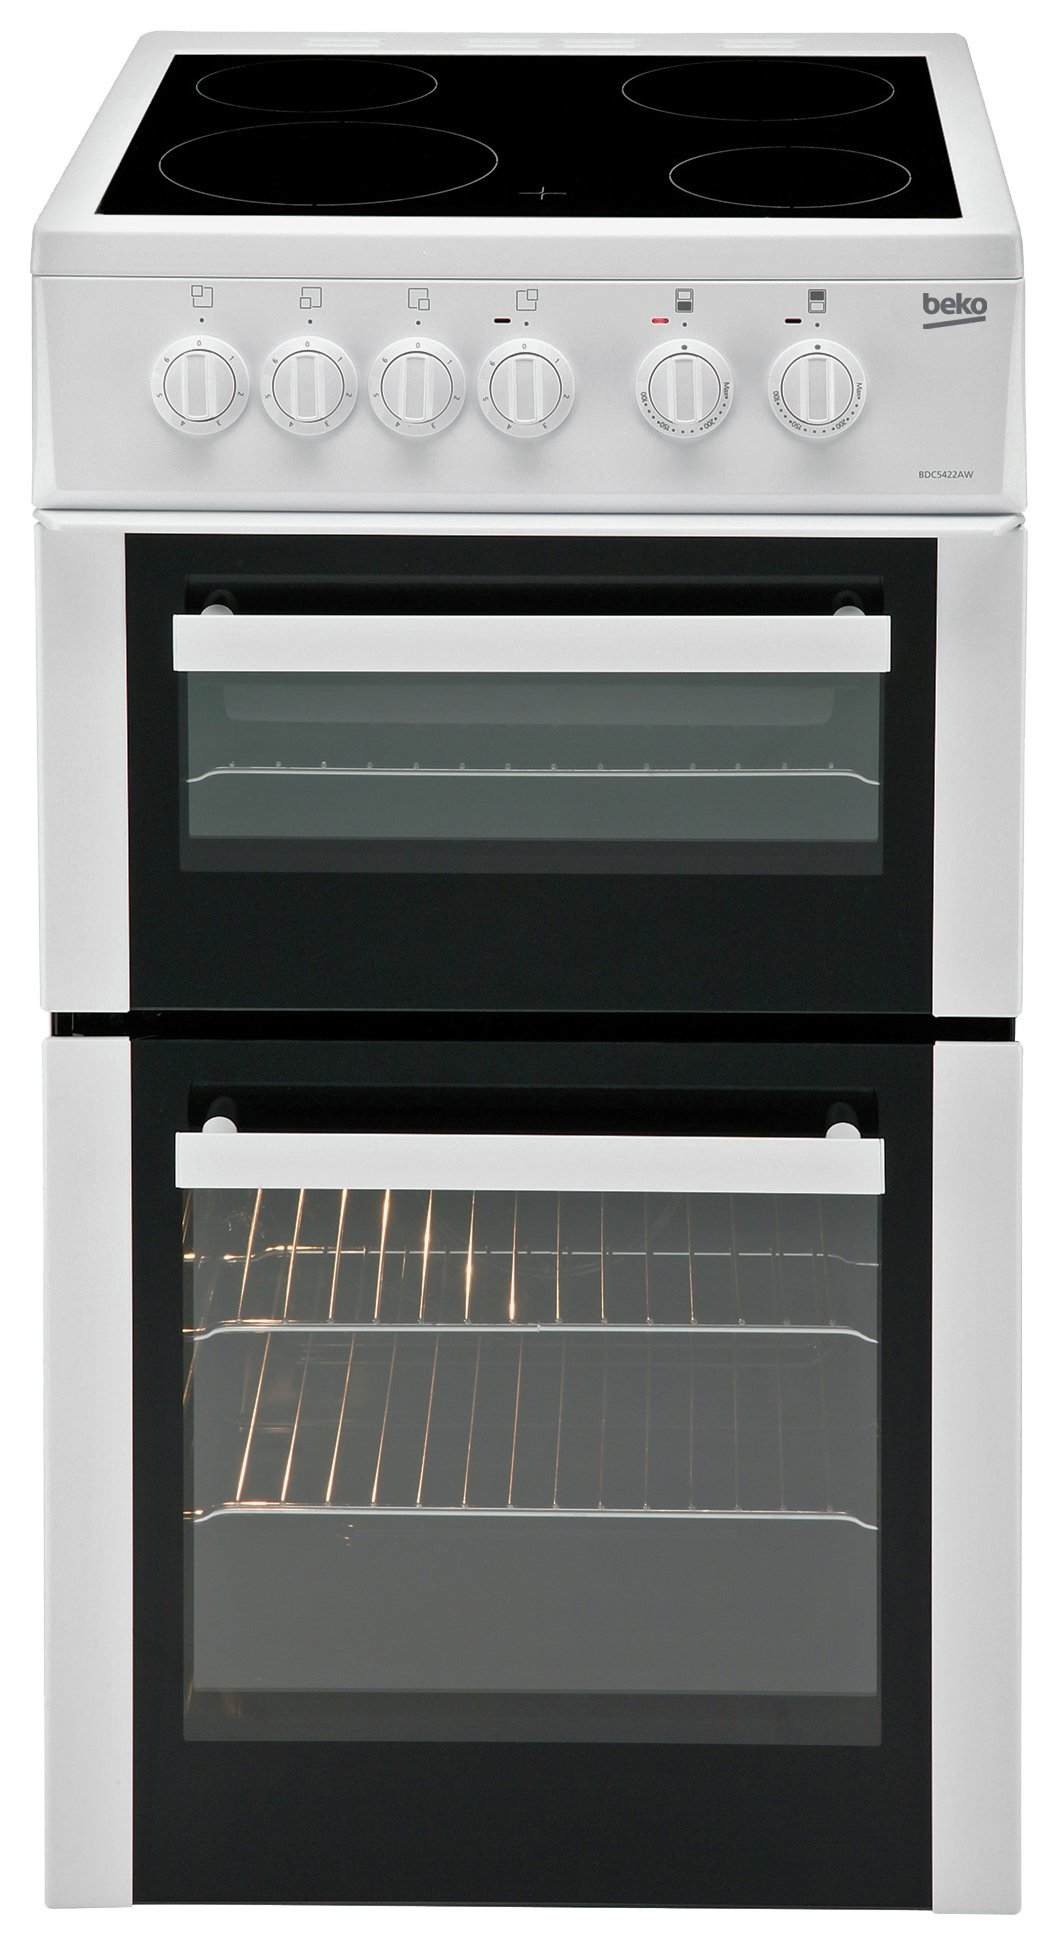 Image of Beko - BDC5422 Twin Cavity - Electric Cooker - White